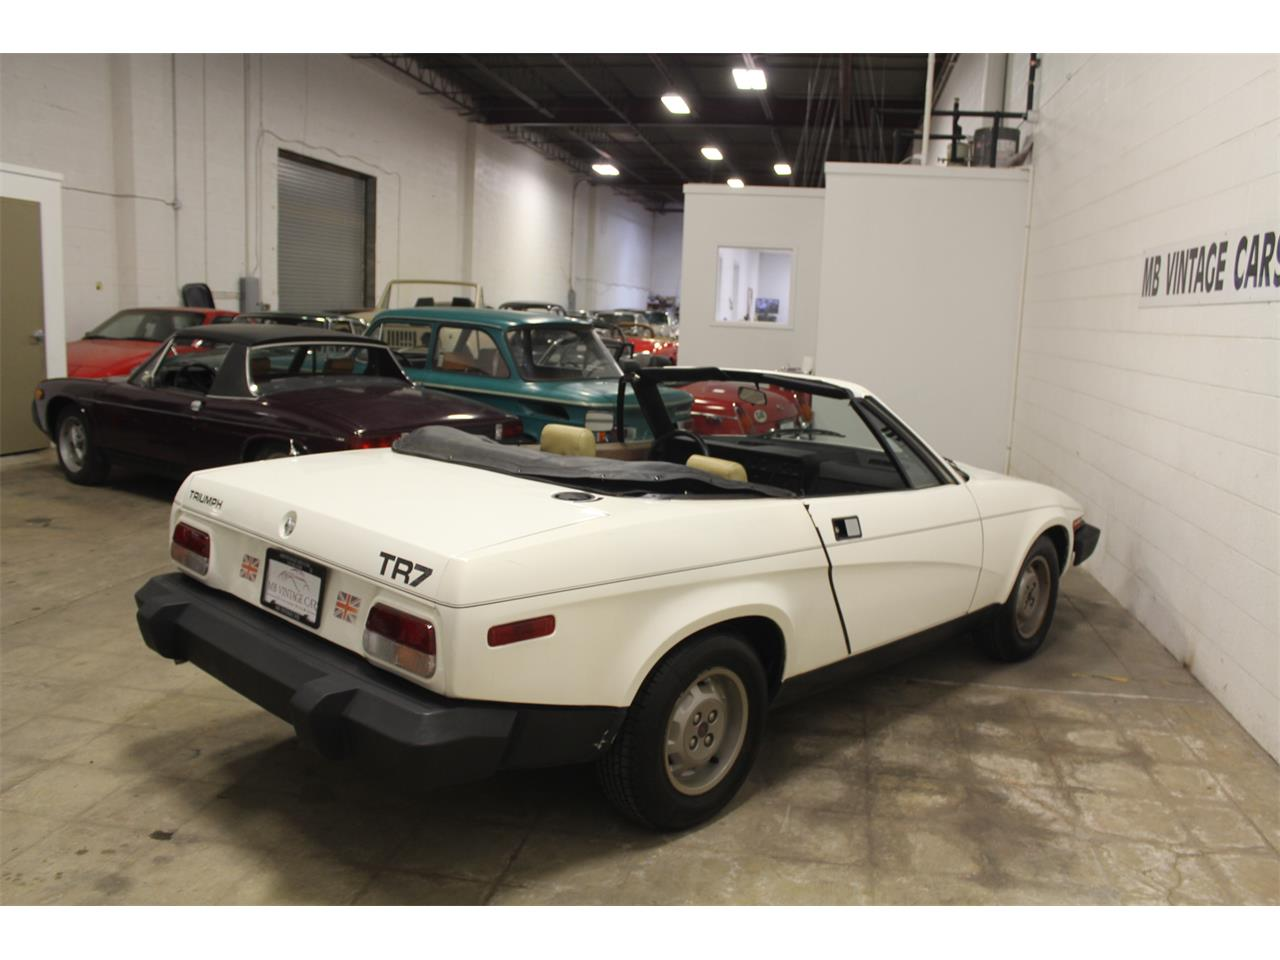 Large Picture of '79 TR7 - $7,950.00 Offered by MB Vintage Cars Inc - Q5UK